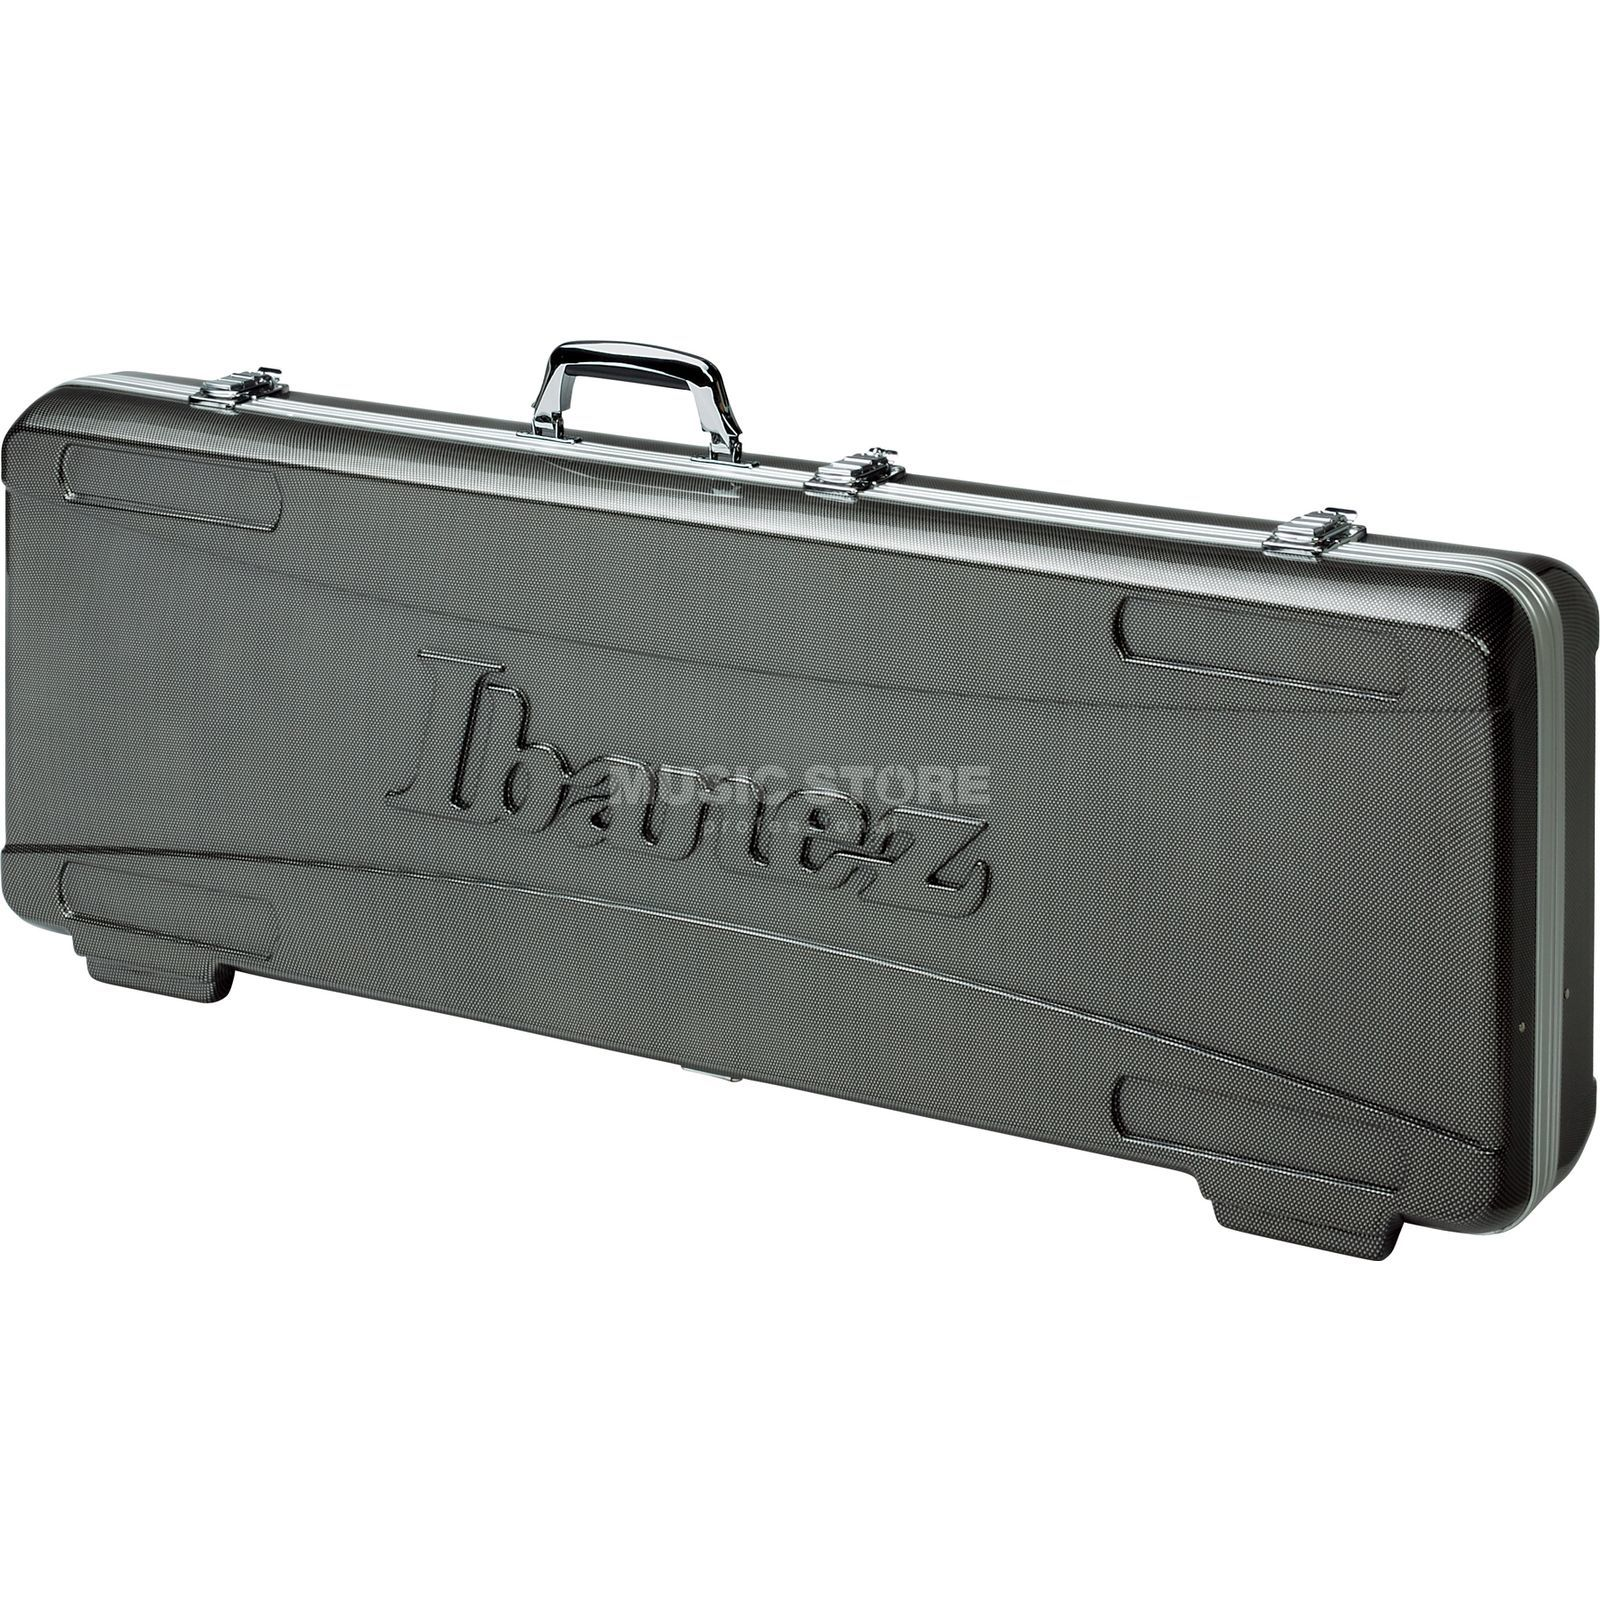 Ibanez Case MP100C Deluxe Solidbody RG / RGA / RGD / RG7 / S / SA Produktbild